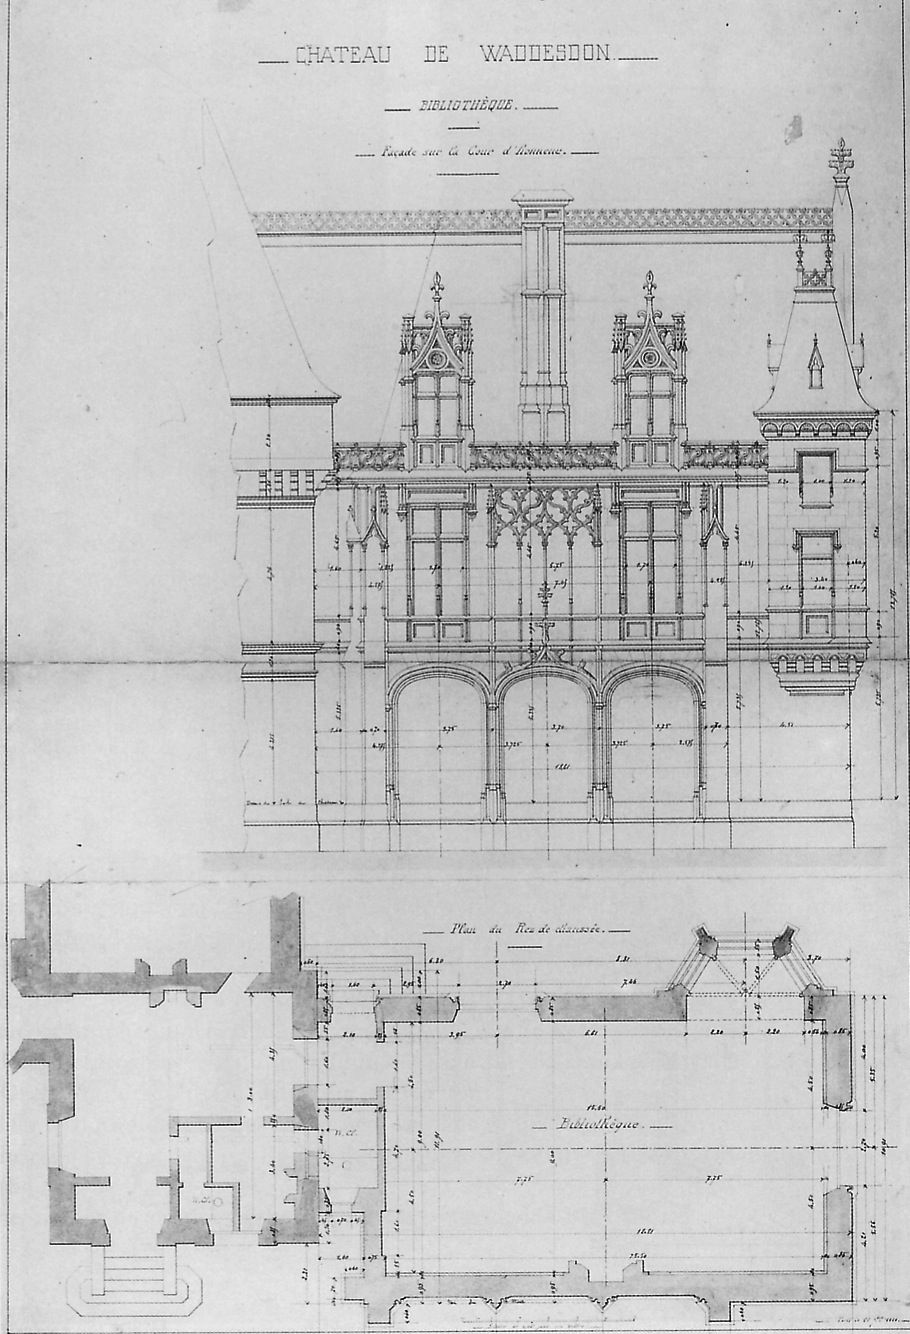 Manor House Drawing: Waddesdon. -- The Design For The Morning Room Addition